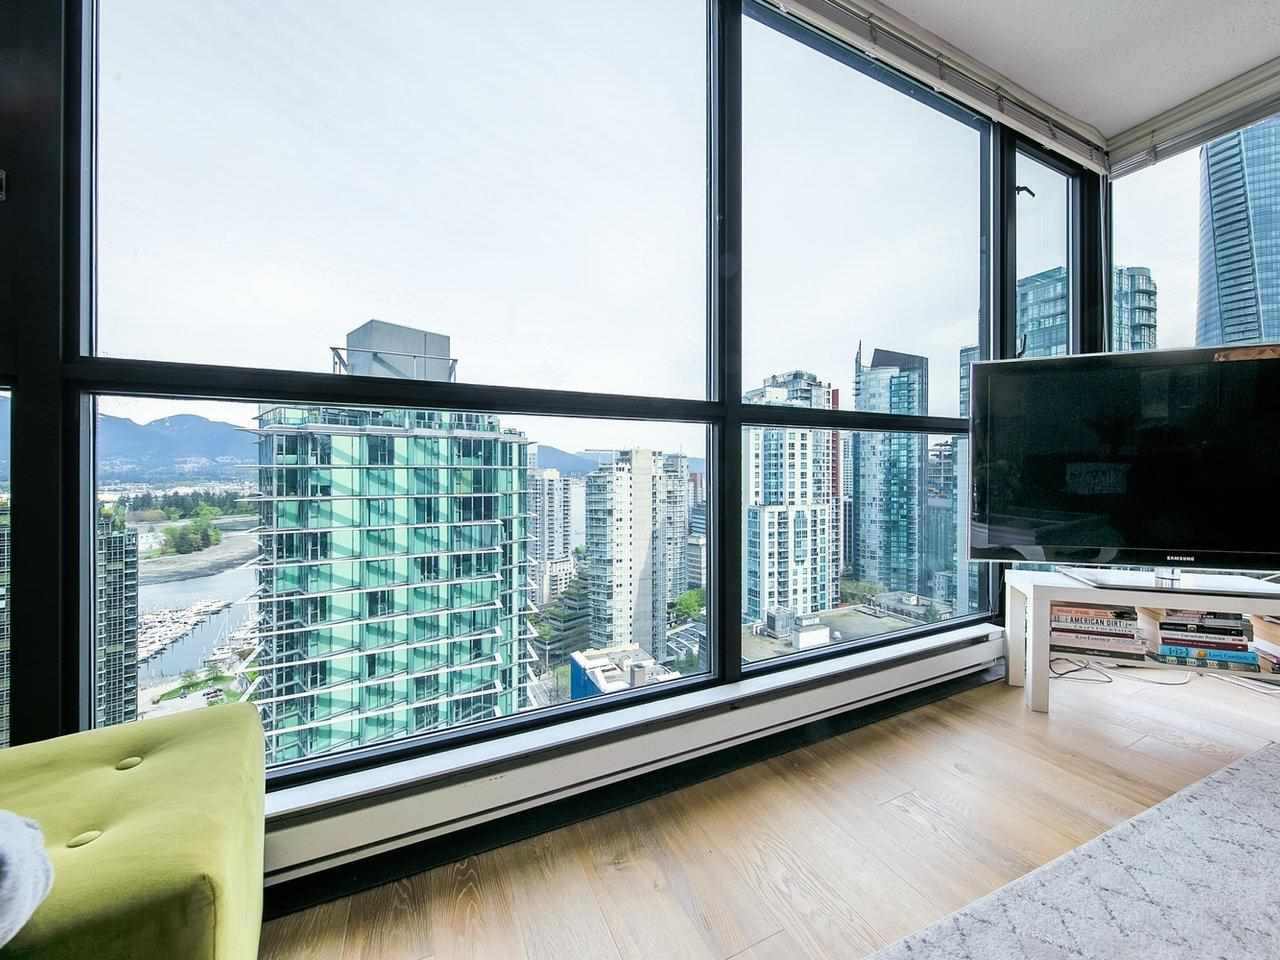 2701 1331 ALBERNI STREET - West End VW Apartment/Condo for sale, 3 Bedrooms (R2576100) - #20